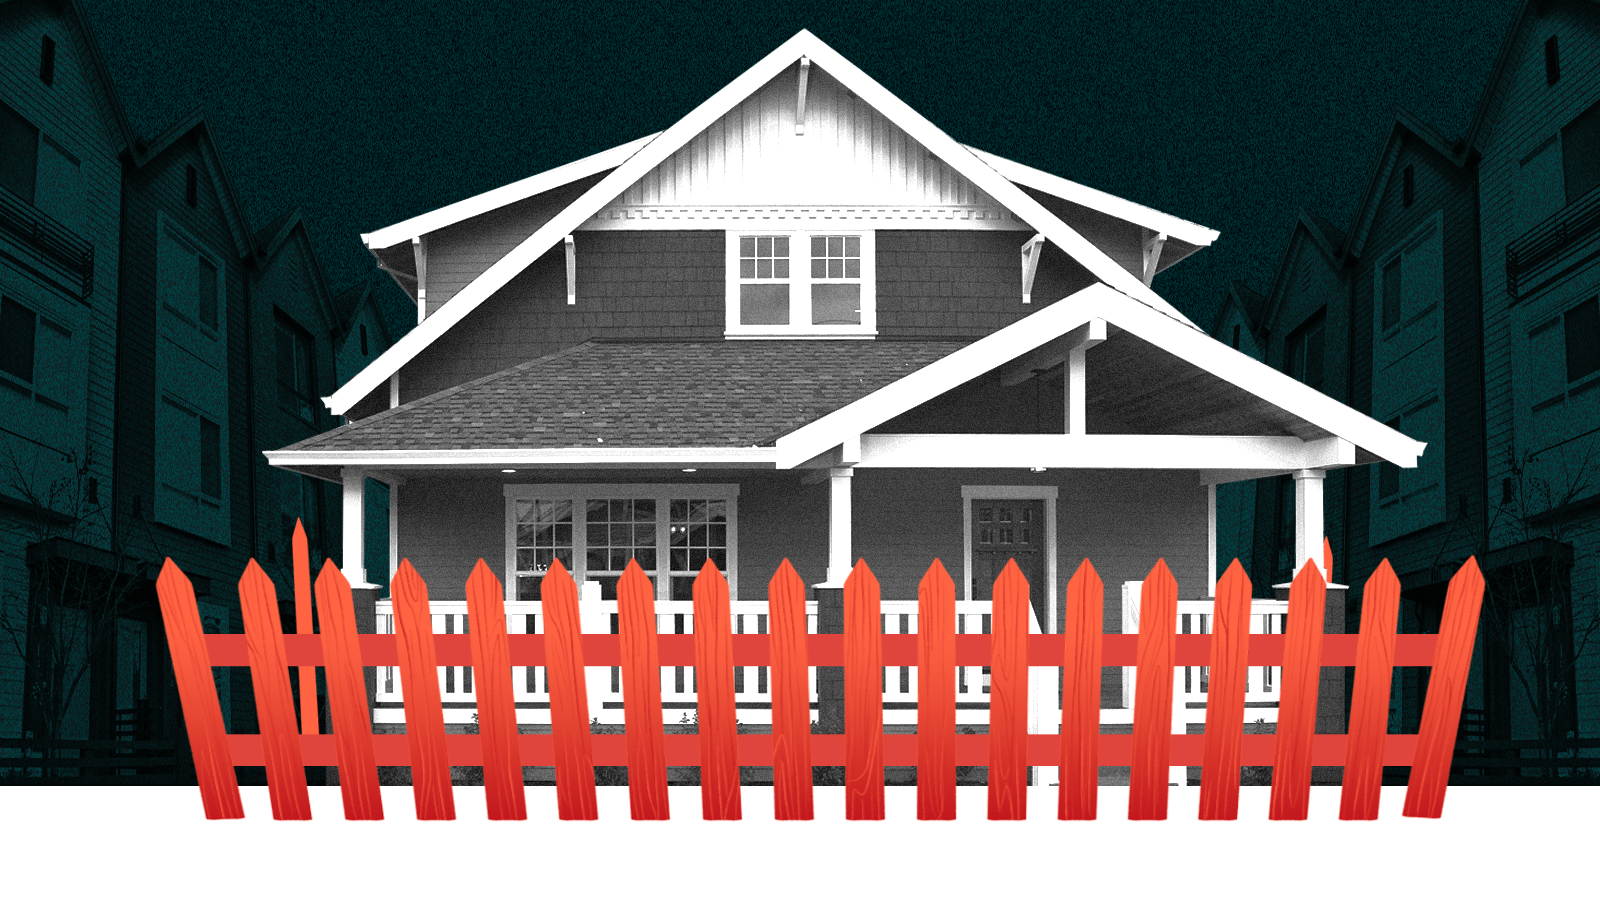 A large house with a red picket fence drawn around it and multi family housing on each side of the image